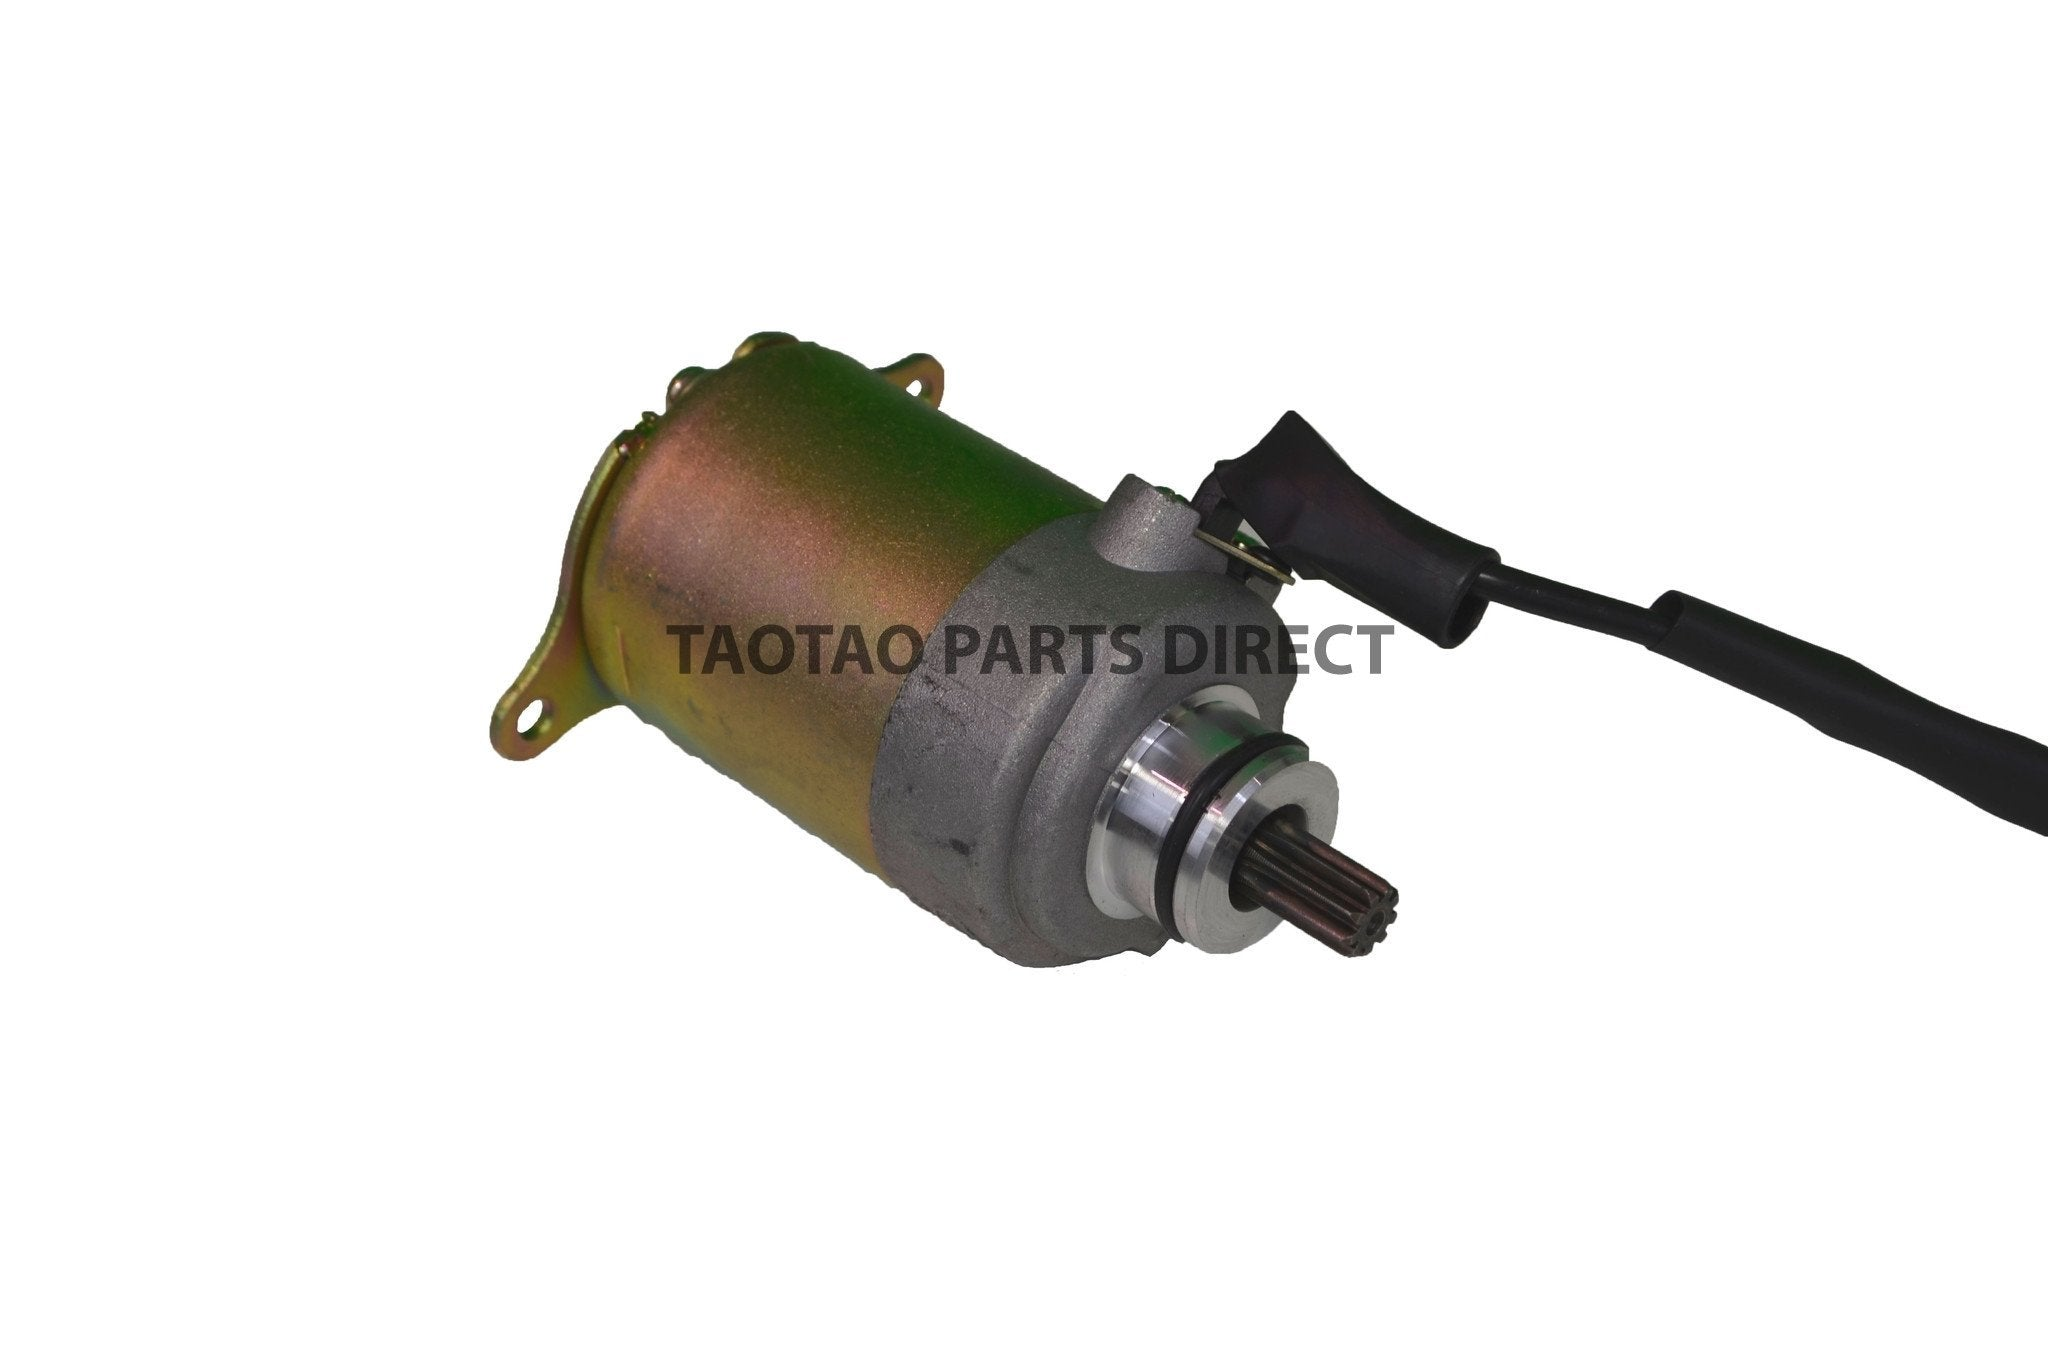 150 GSR Scooter Moped Battery Cover Gy6 150cc Taotao CY150D Lancer 150 Racer